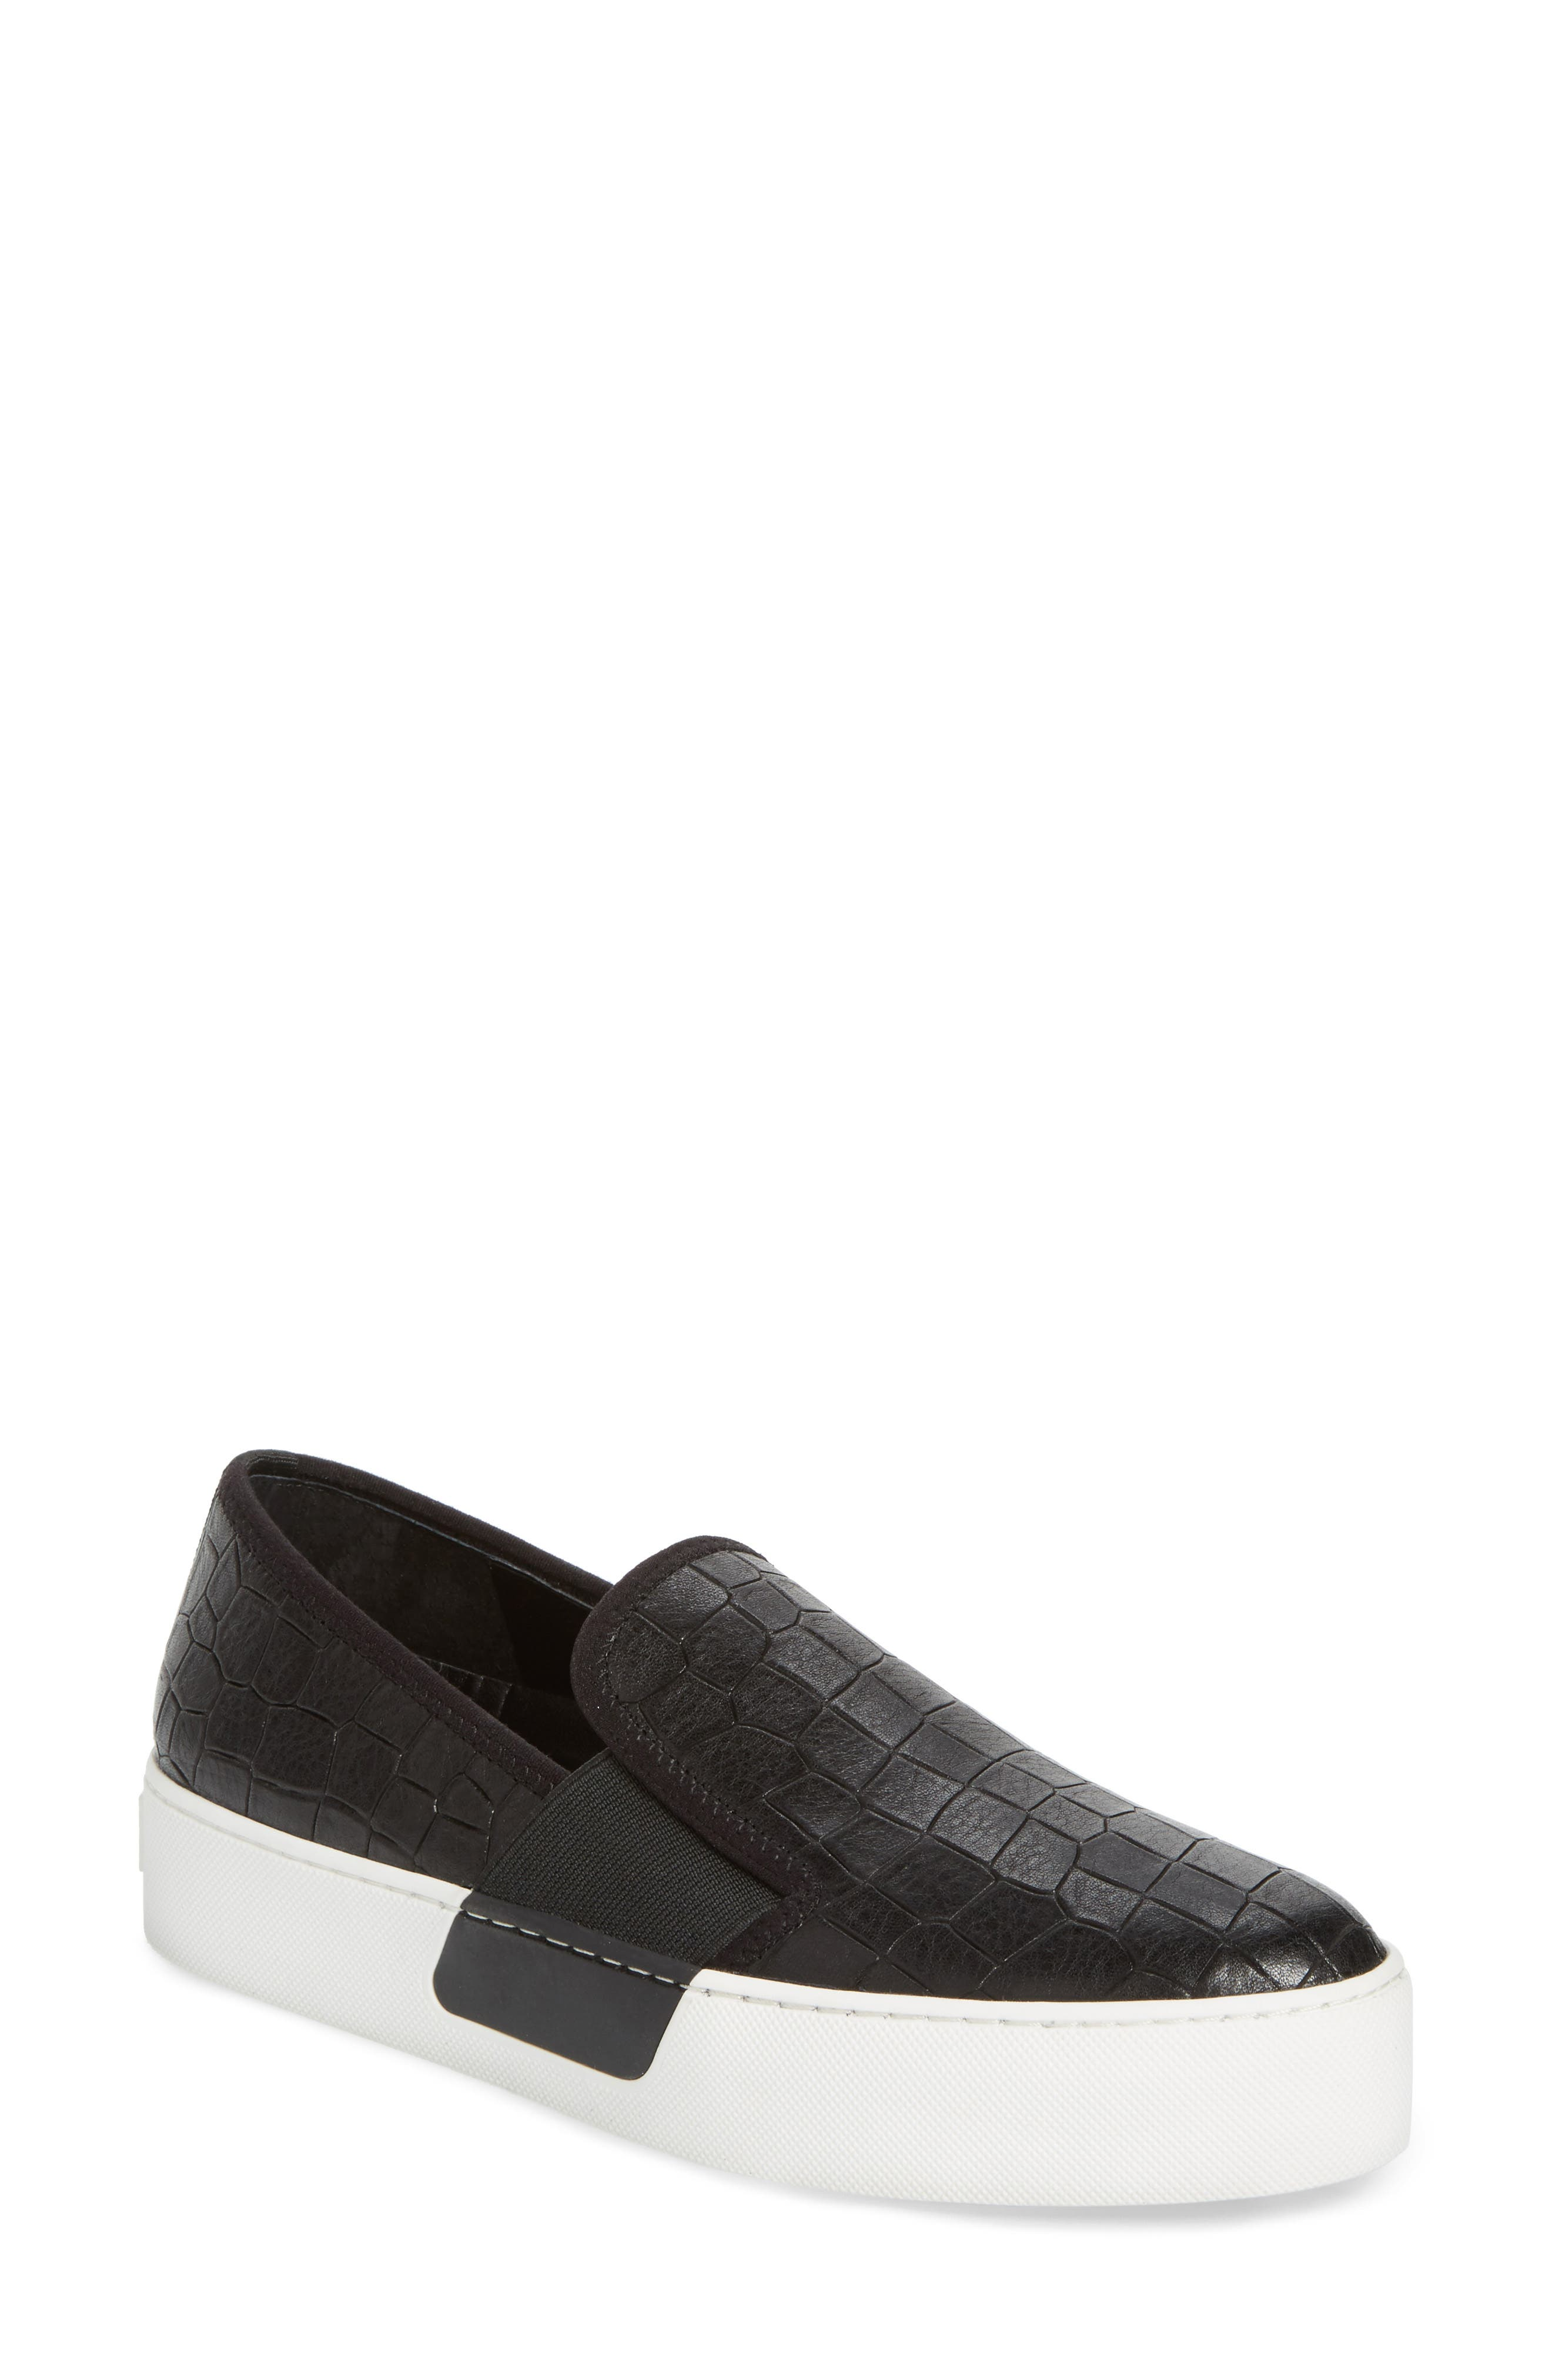 Waylan Slip-On Sneaker,                             Main thumbnail 1, color,                             006